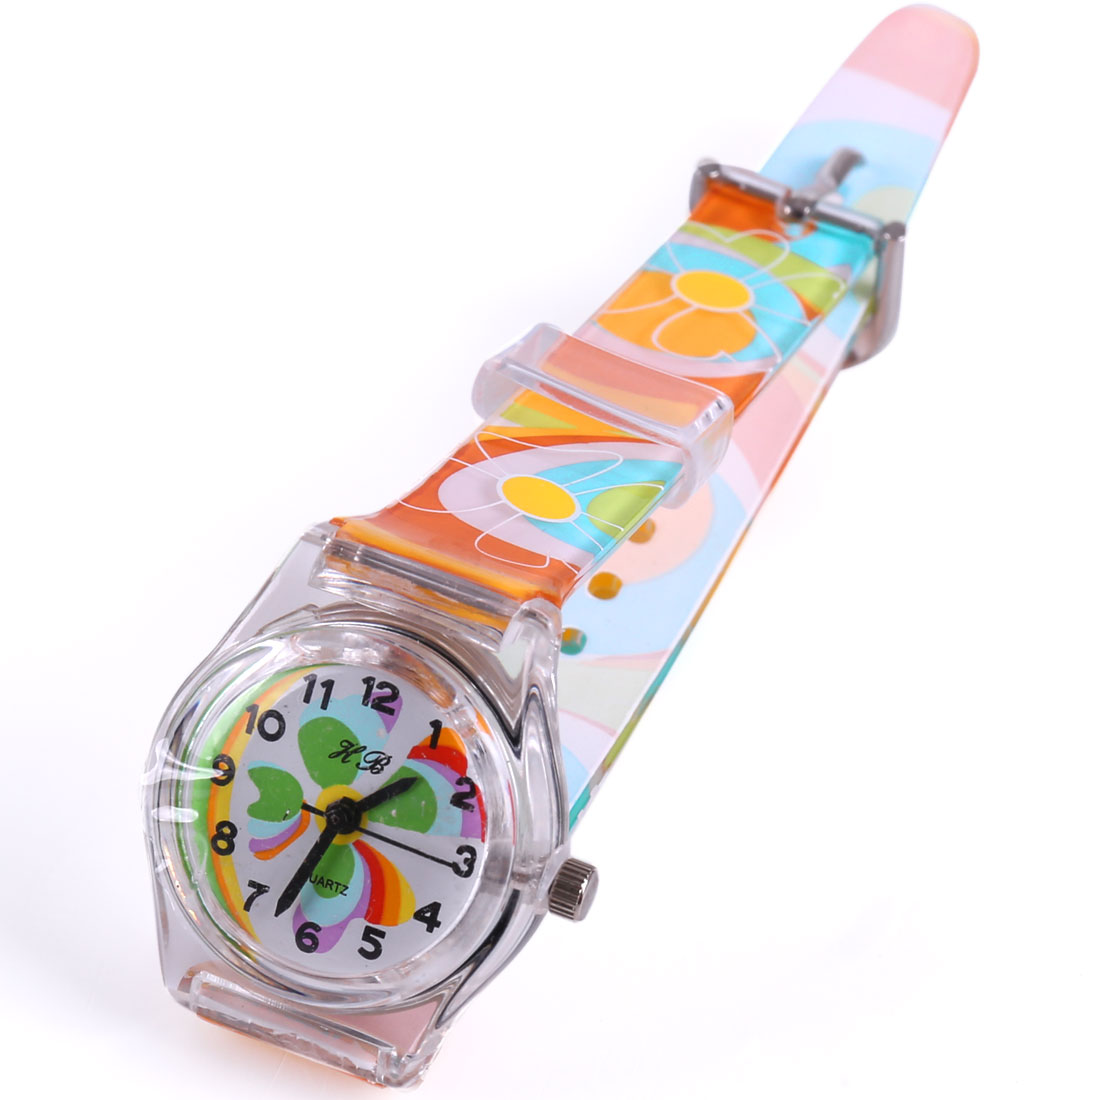 Buckle Flower Adjustable Strap Wrist Watch for Kids Multicolor